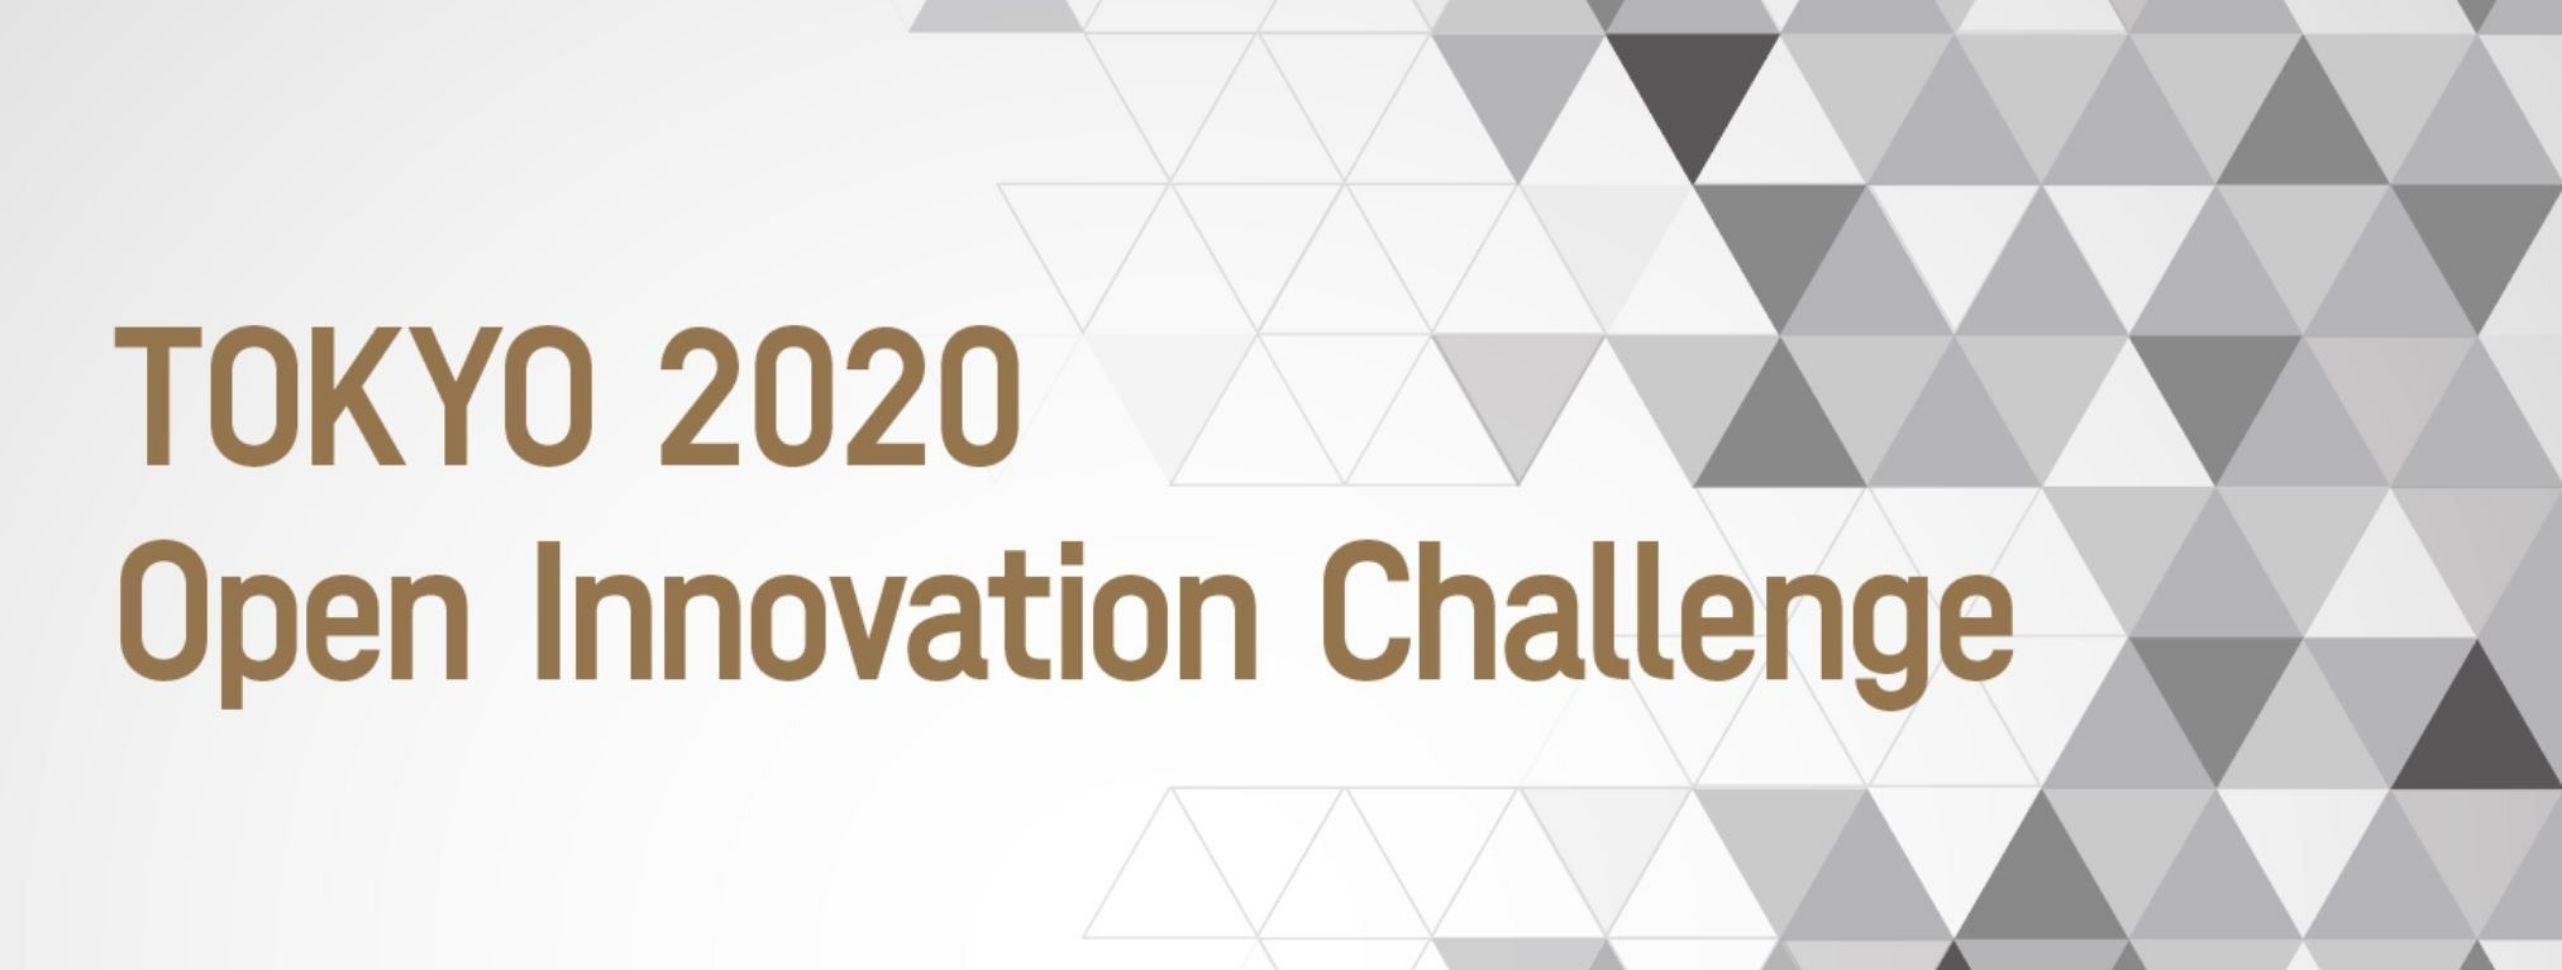 Take On the Tokyo 2020 Open Innovation Challenge